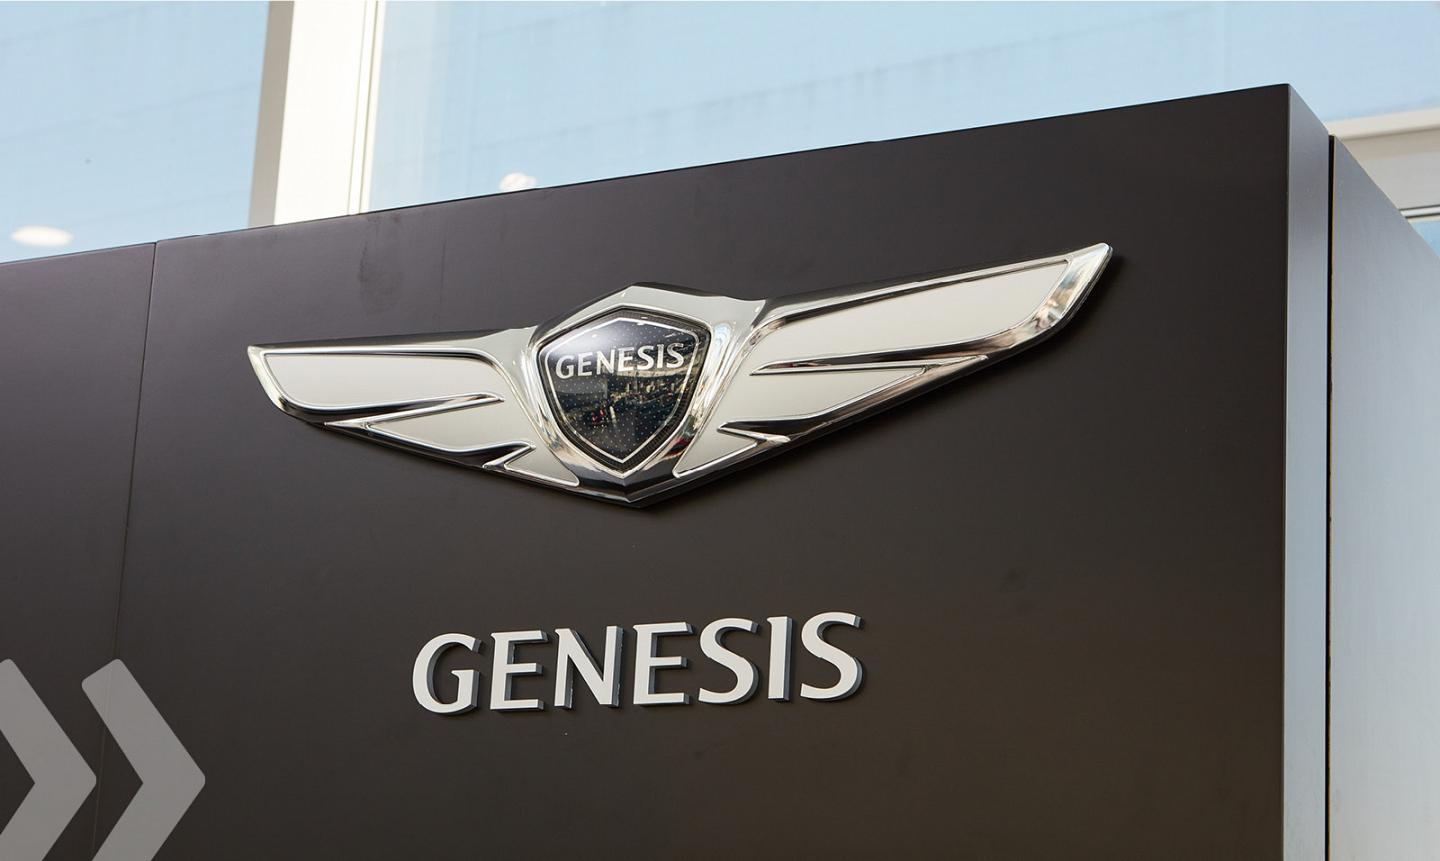 Hyundai Genesis Shop in Shop Zone 7